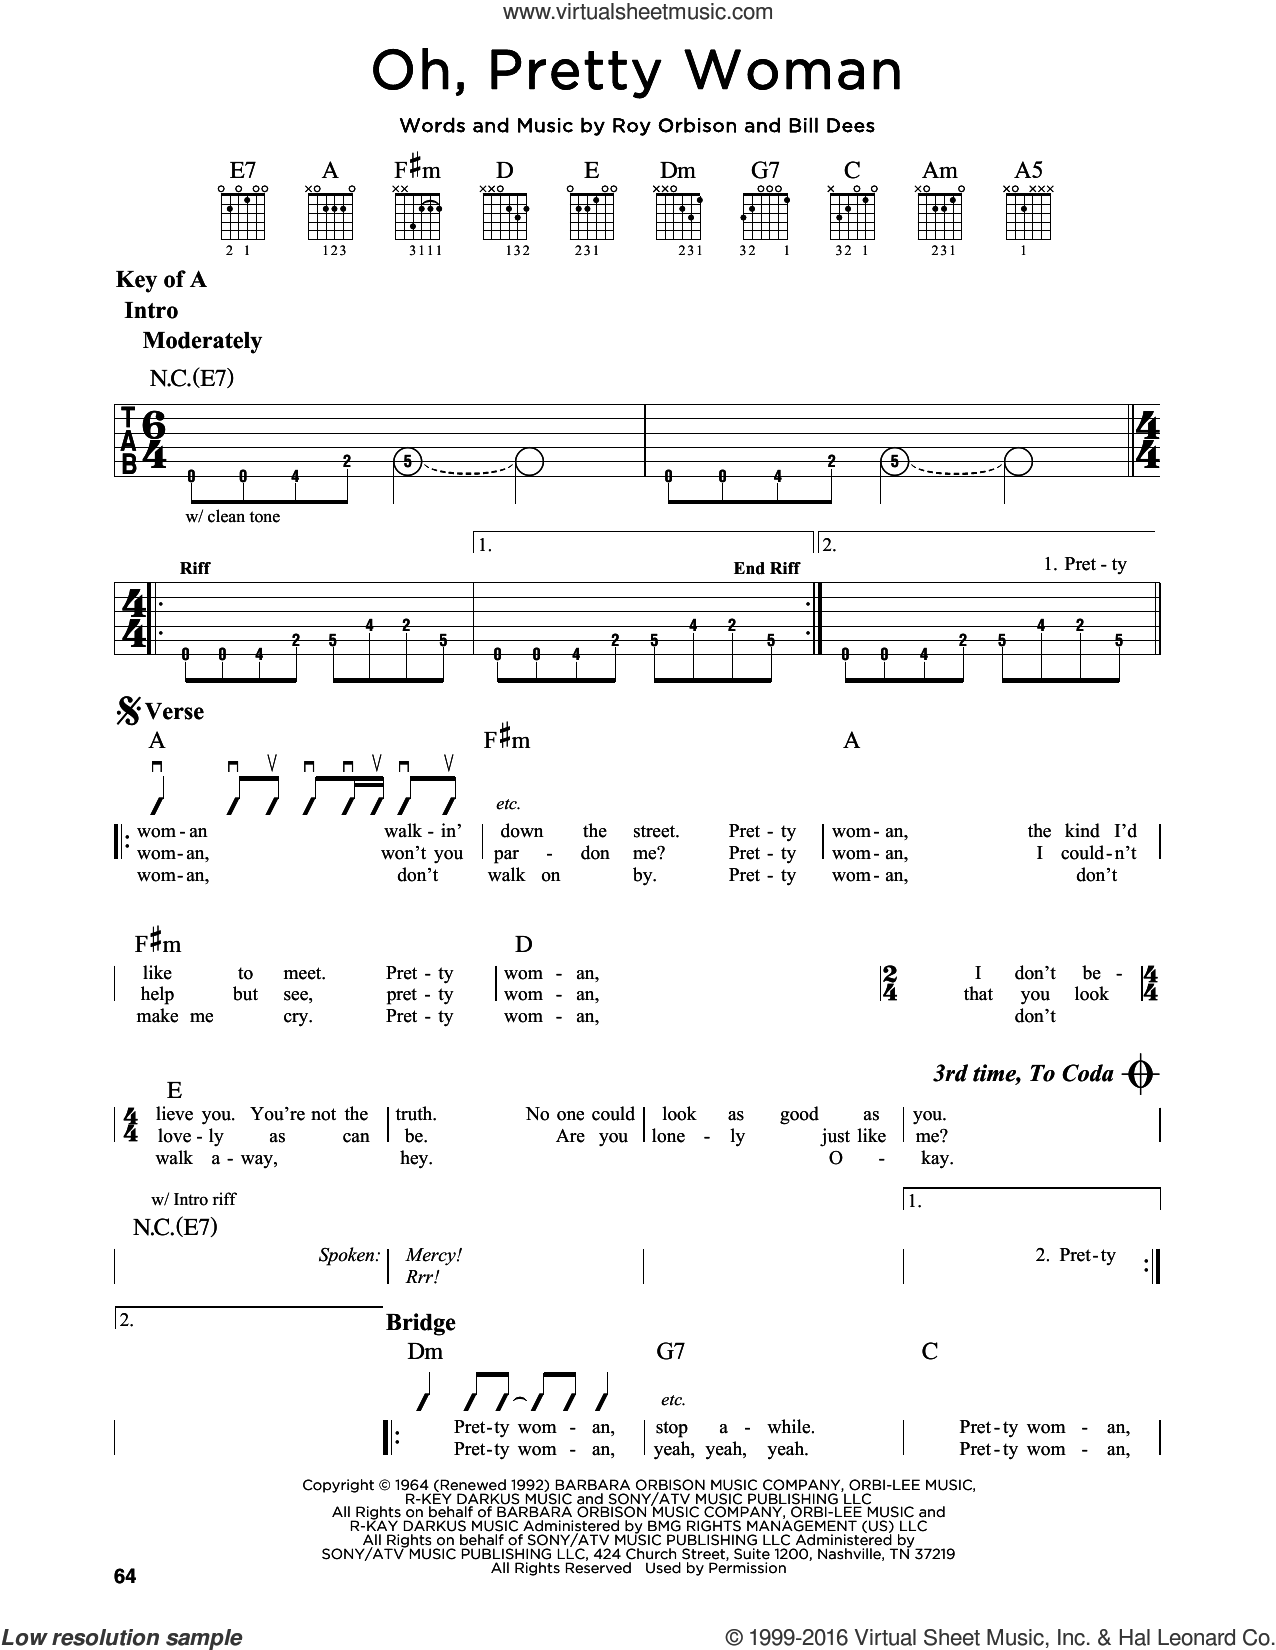 Oh, Pretty Woman sheet music for guitar solo (lead sheet) by Bill Dees, Edward Van Halen and Roy Orbison. Score Image Preview.